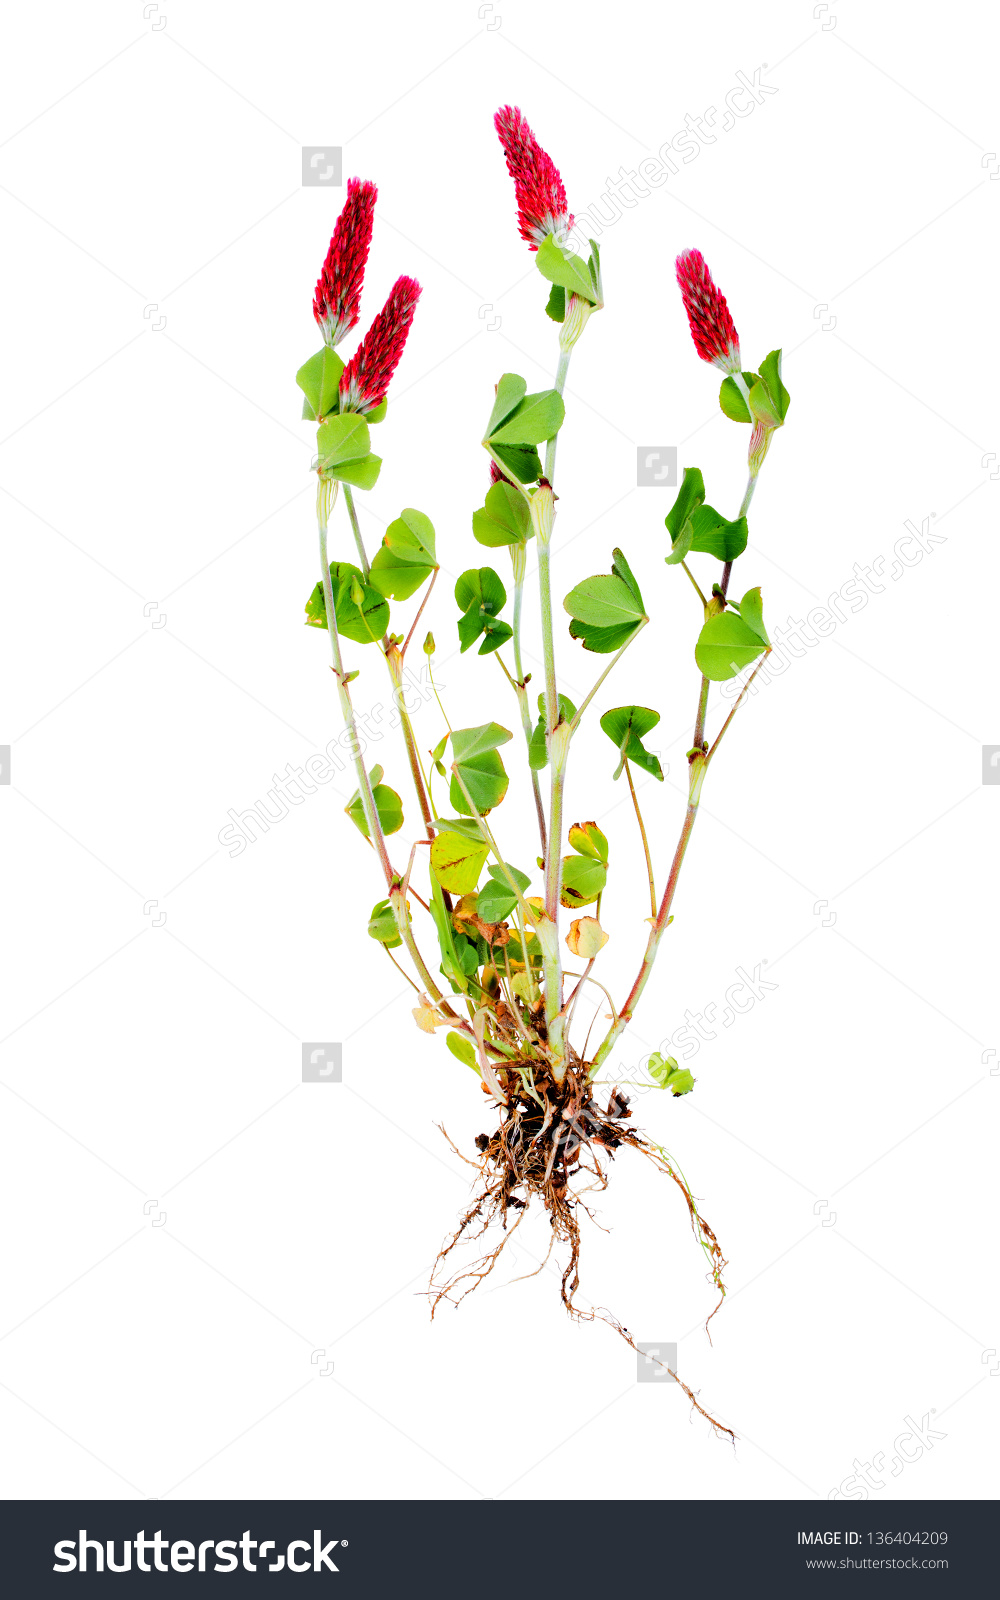 Clover Meat Red Crimson Clover Latin Stock Photo 136404209.